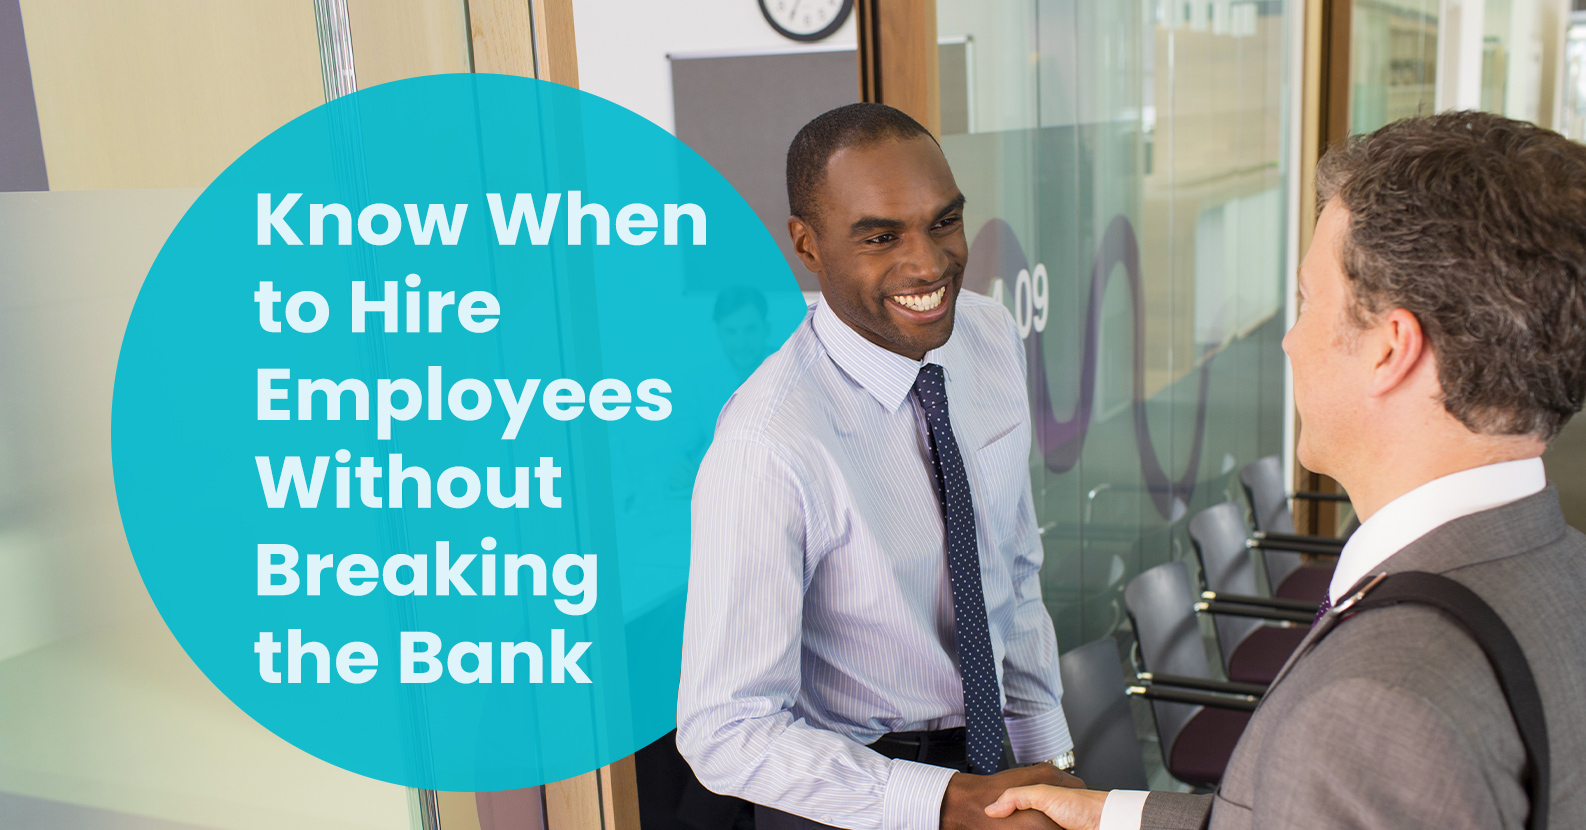 Know When to Hire Employees Without Breaking the Bank